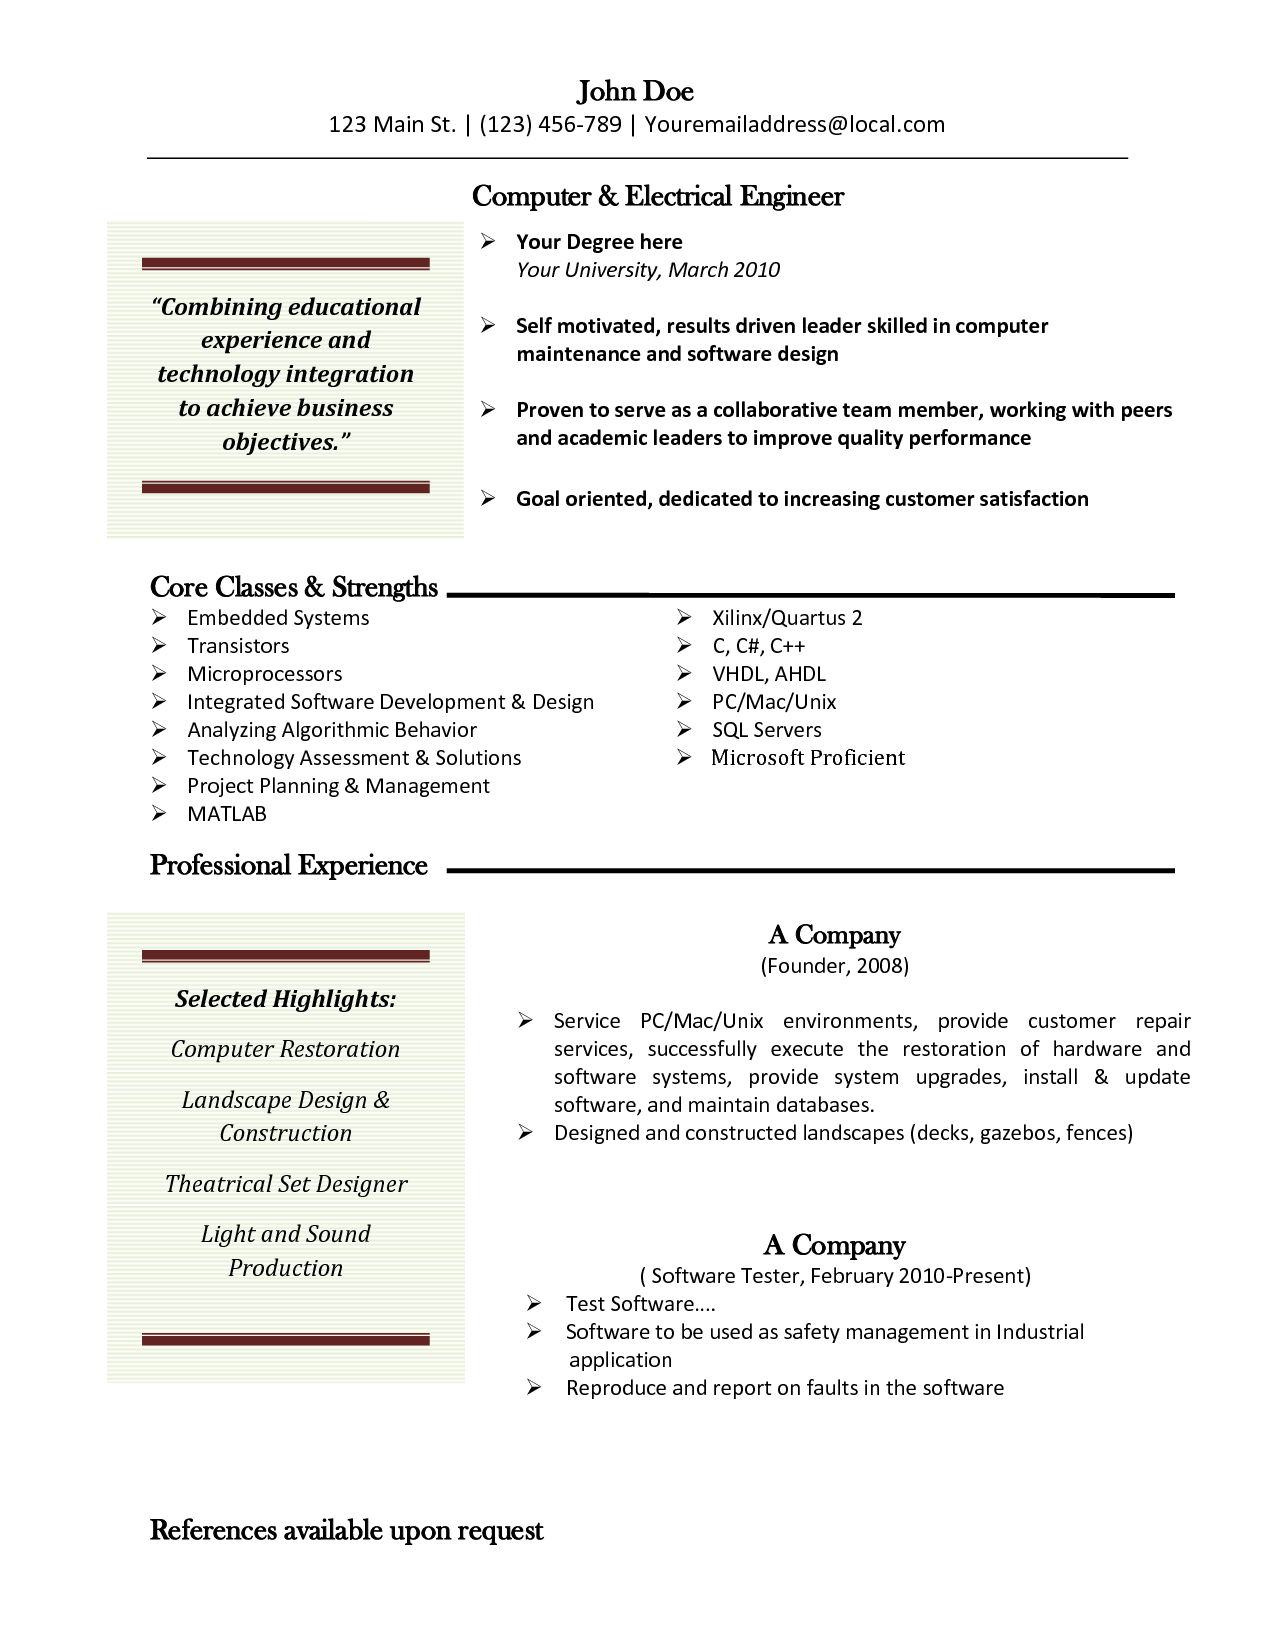 Resume Templates For Pages Pinsonnie Daigle On Cv  Pinterest  Template Job Resume